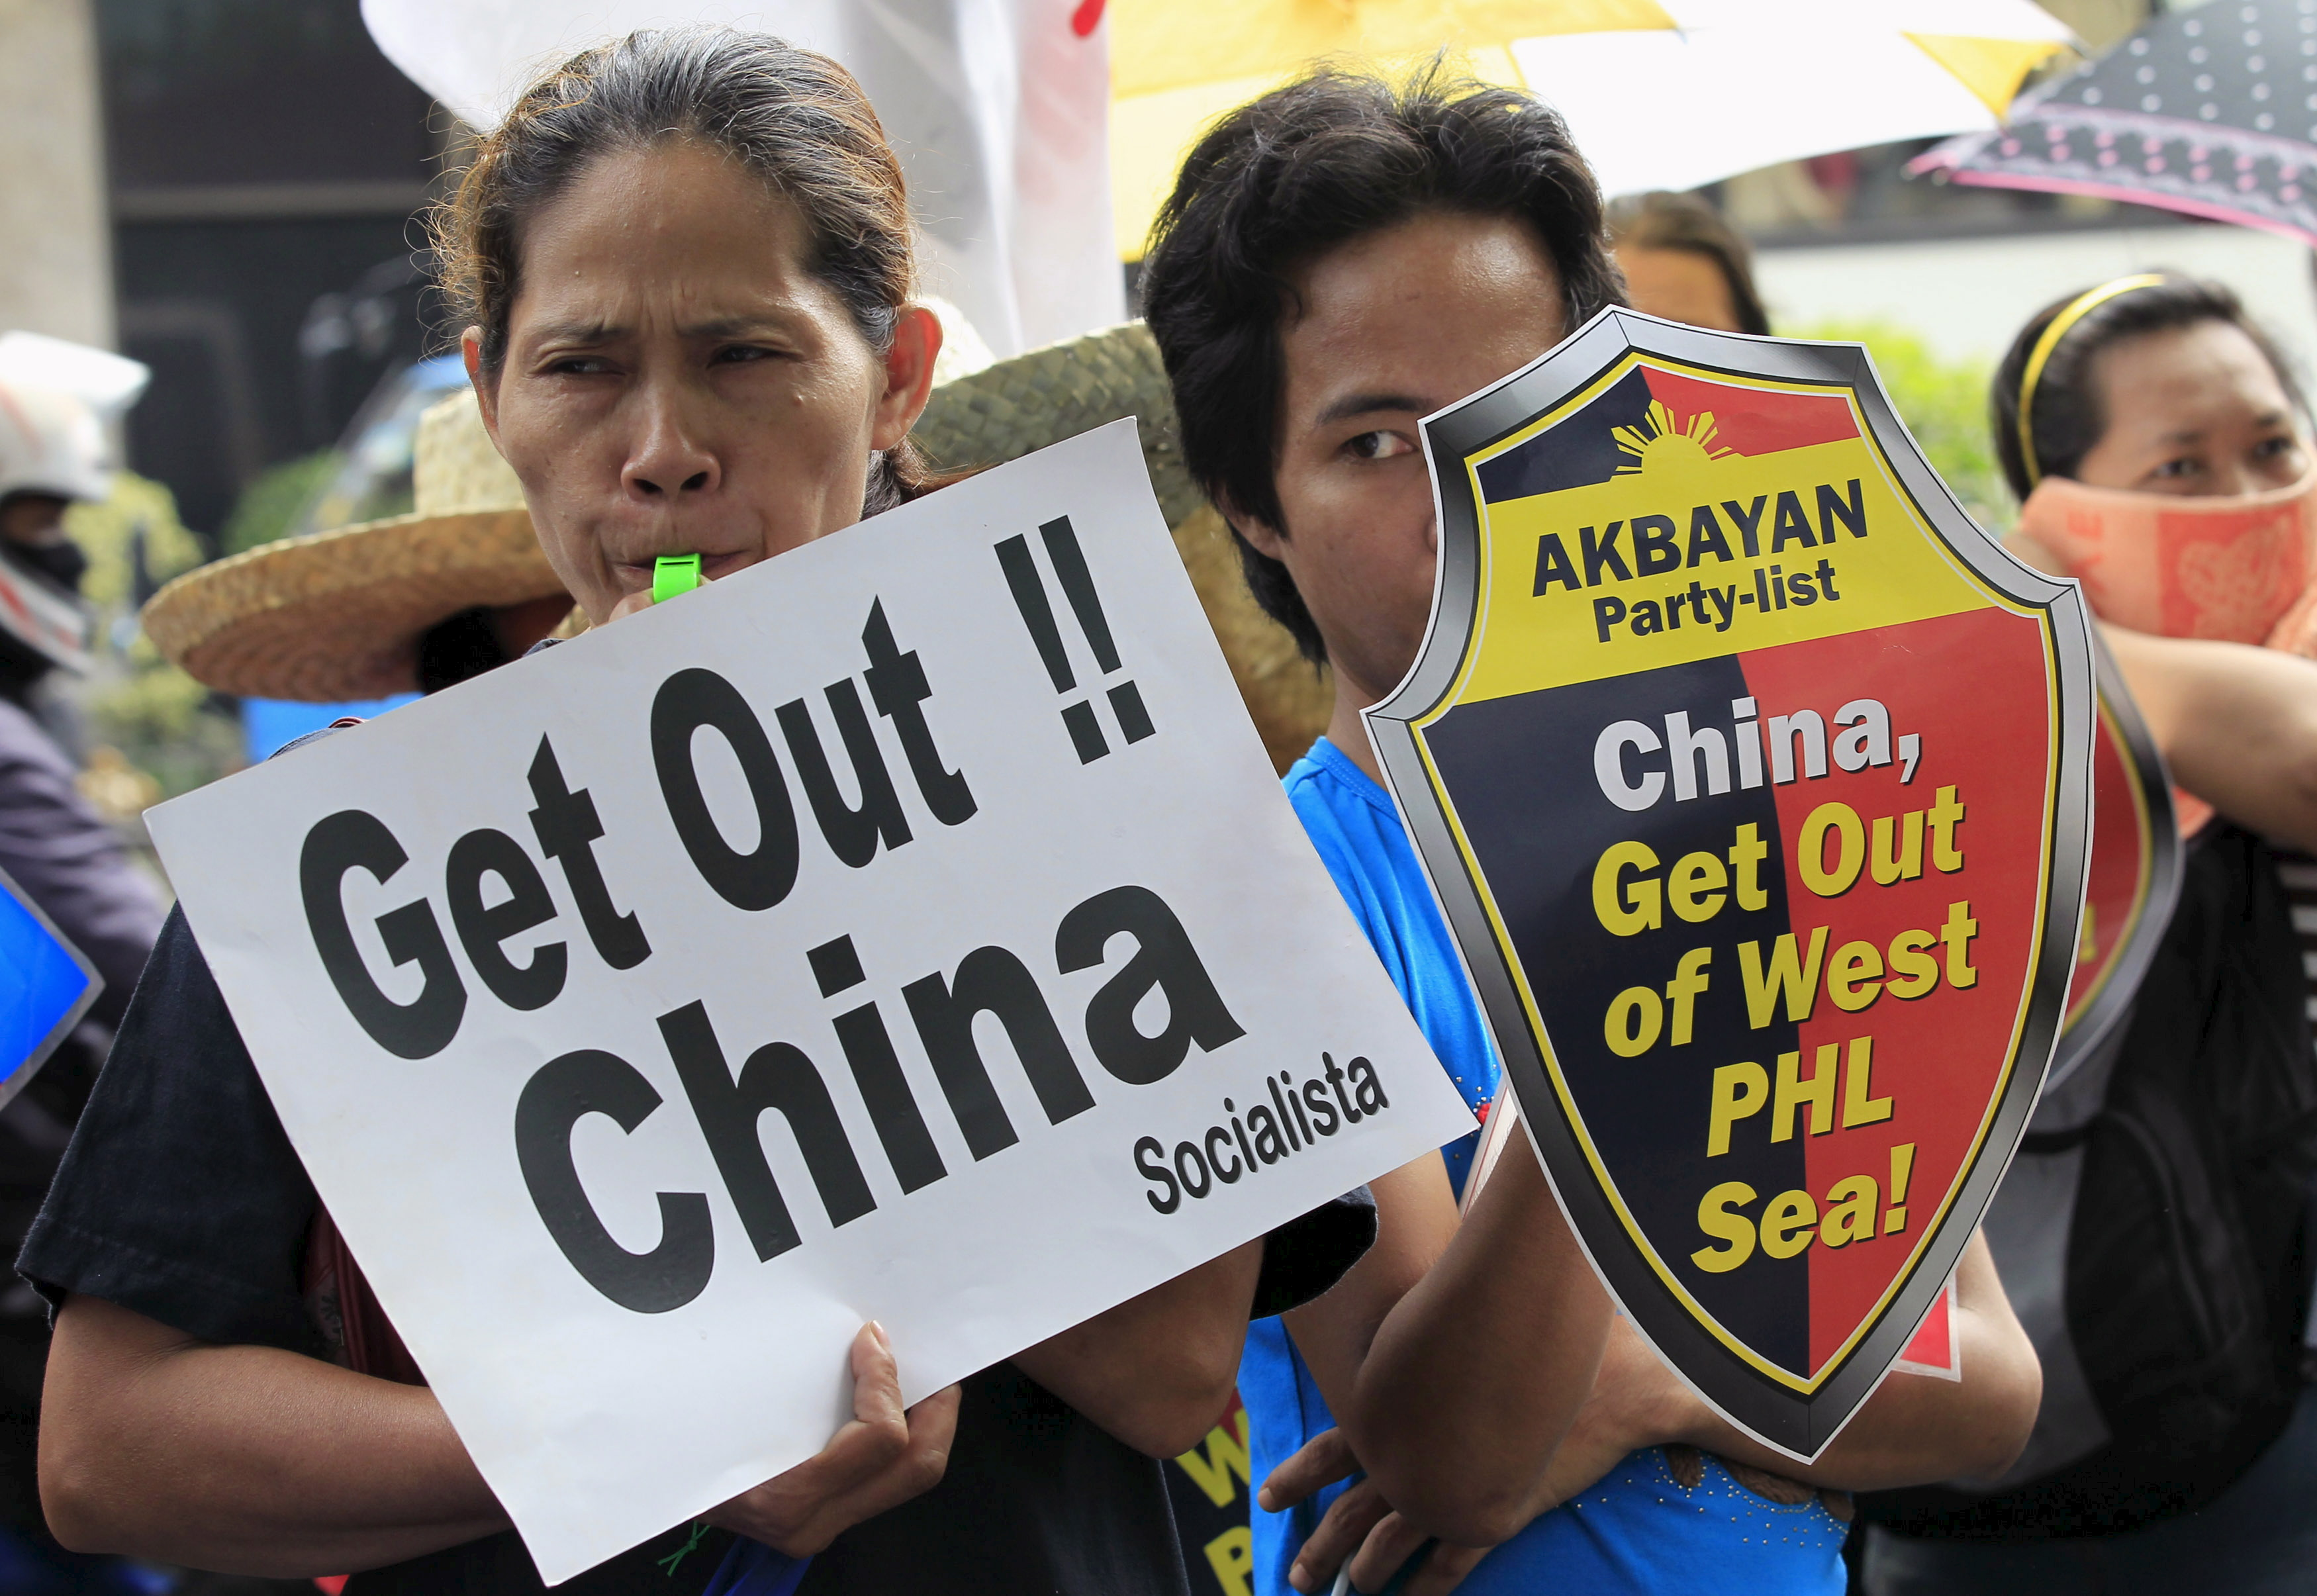 Protesters make noise during a rally regarding the disputed islands in the South China Sea, in front of the Chinese Consulate in Makati city, metro Manila July 24, 2015.